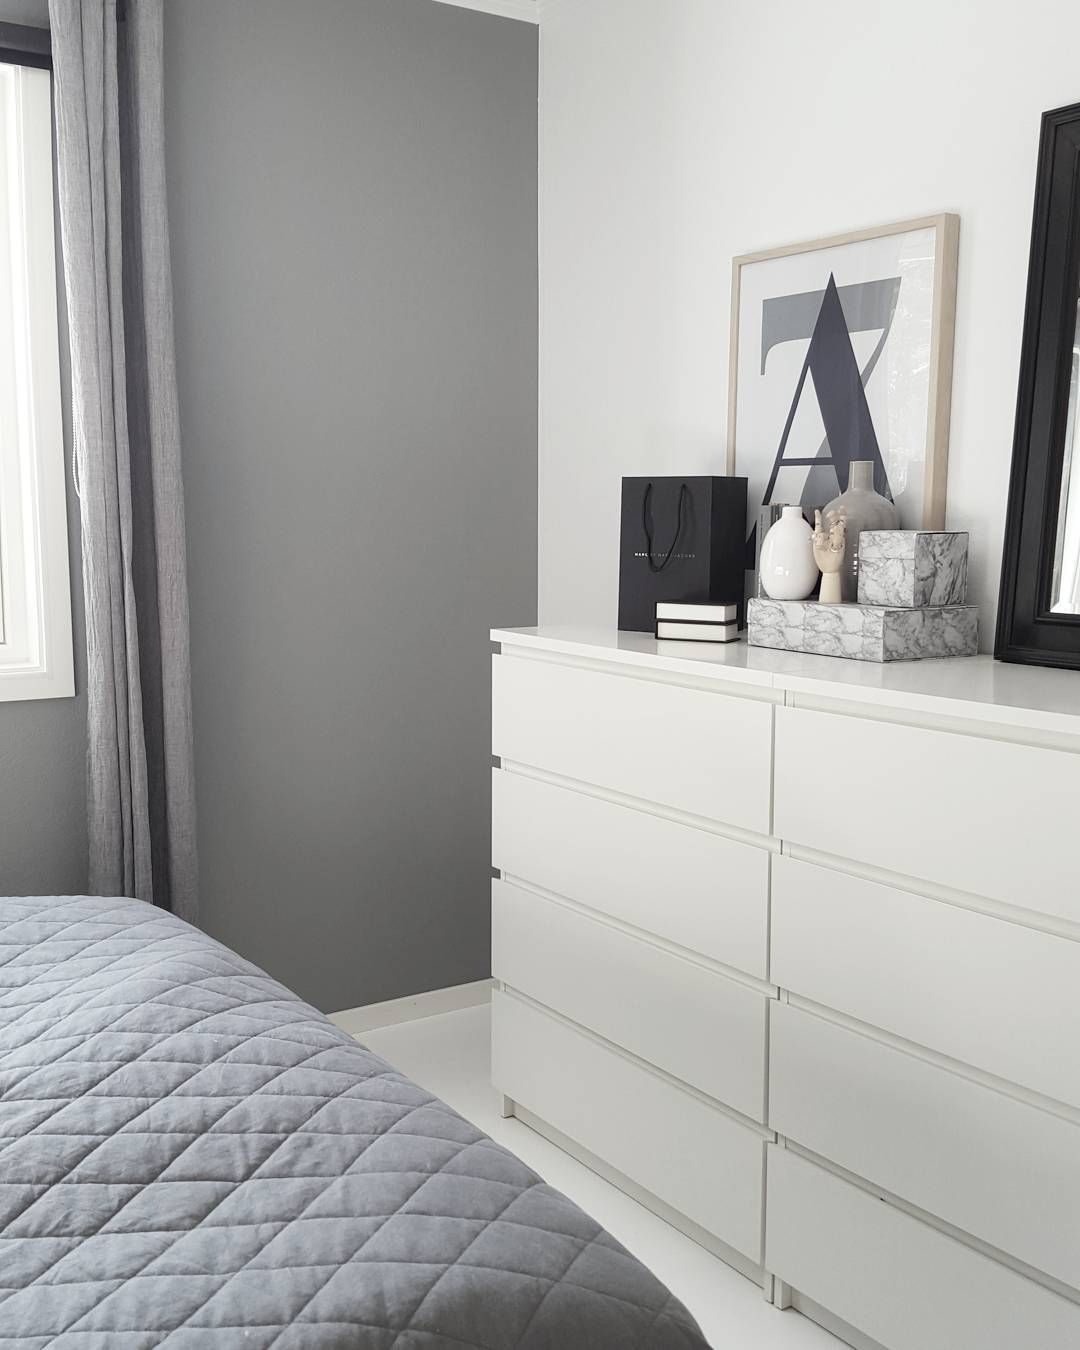 ikea 39 malm 39 dressers ritavalstad bedrooms pinterest schlafzimmer wohn schlafzimmer und. Black Bedroom Furniture Sets. Home Design Ideas